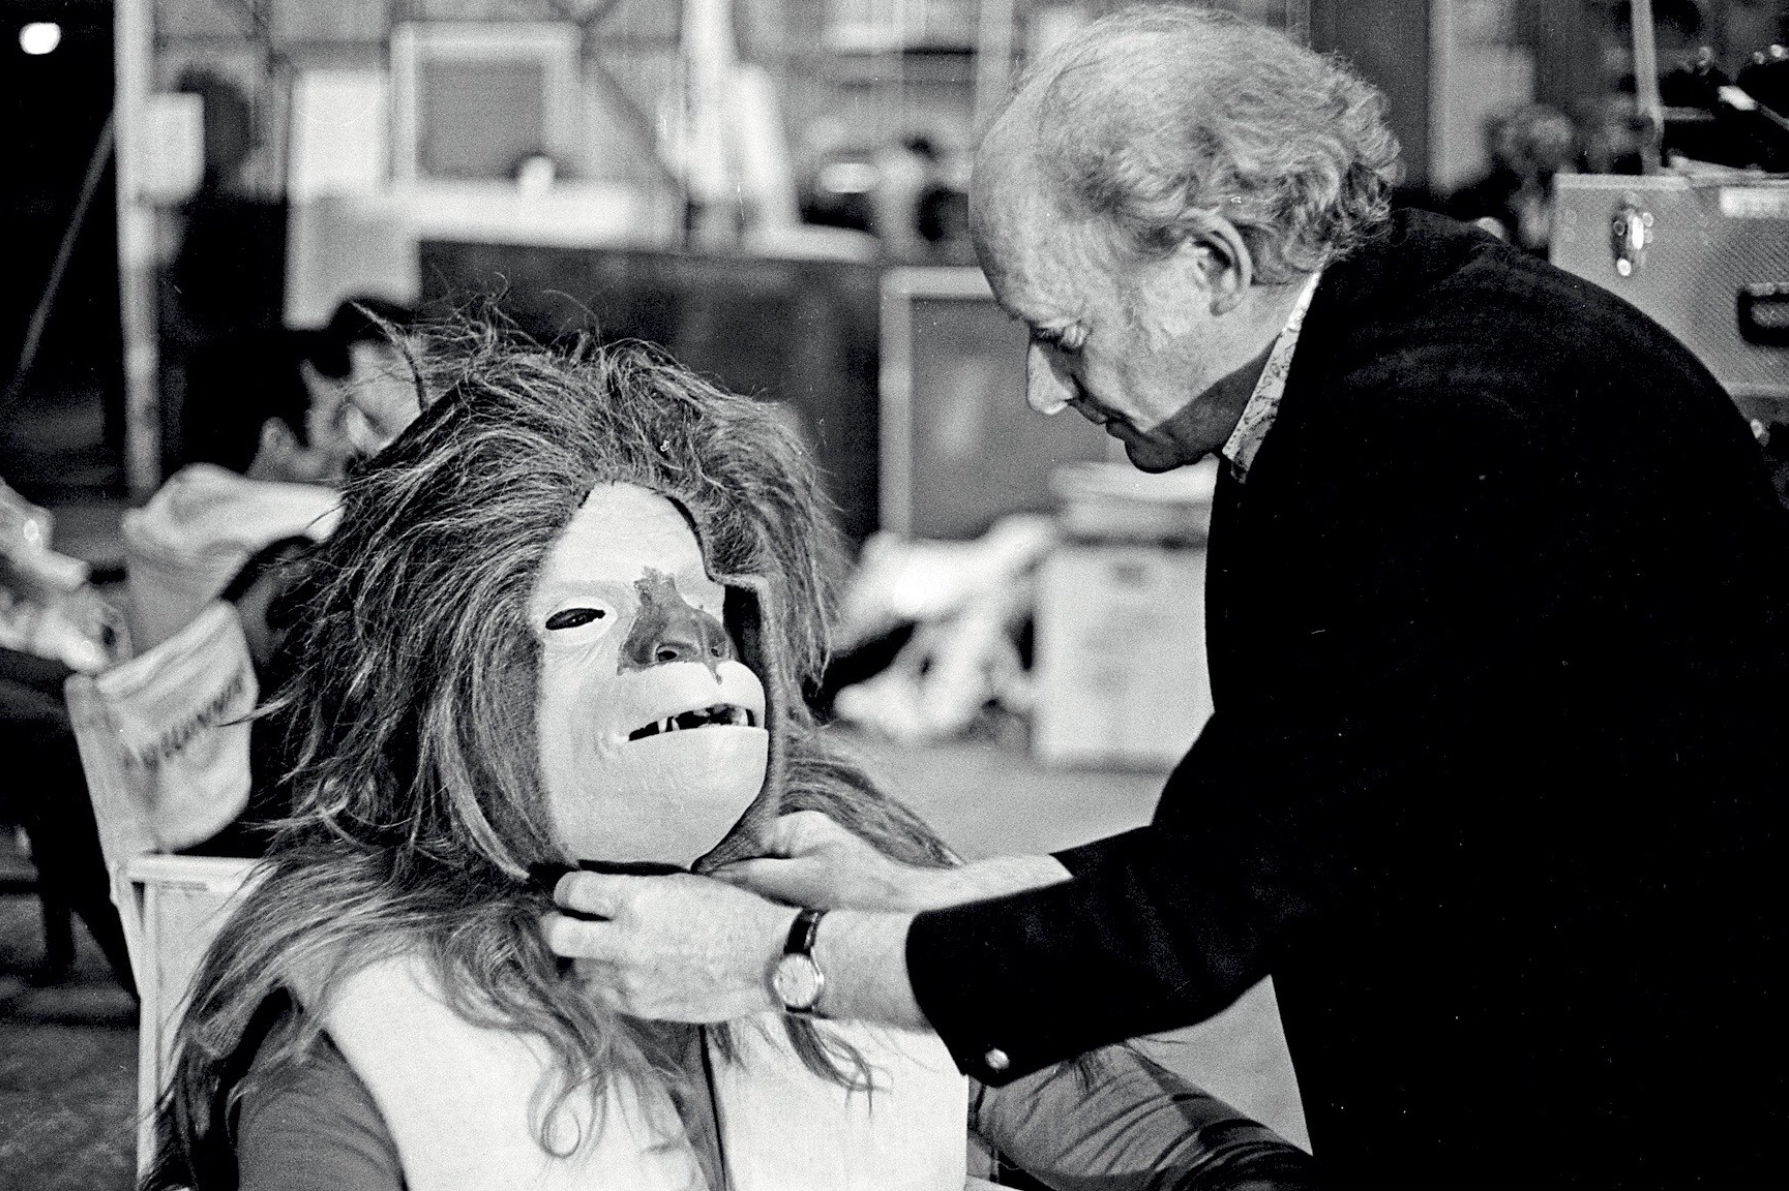 Stuart Freeborn at work on Chewbacca. Source: Unknown.